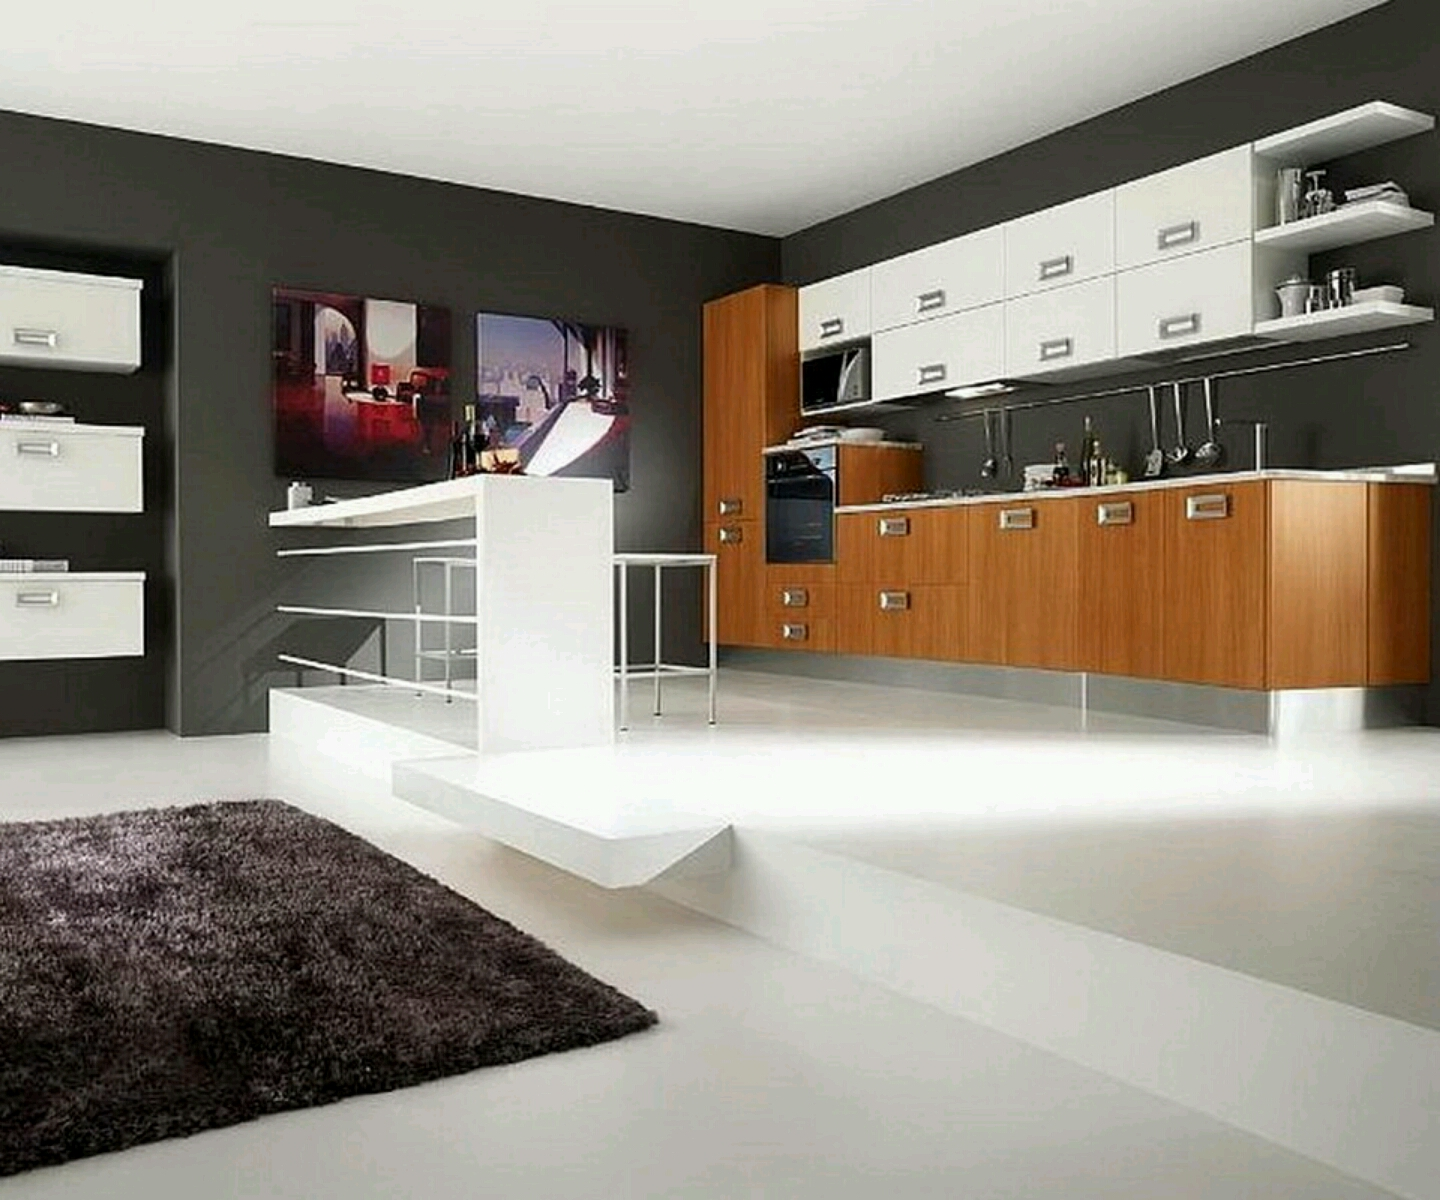 New home designs latest ultra modern kitchen designs ideas - Modern interior kitchen design ...